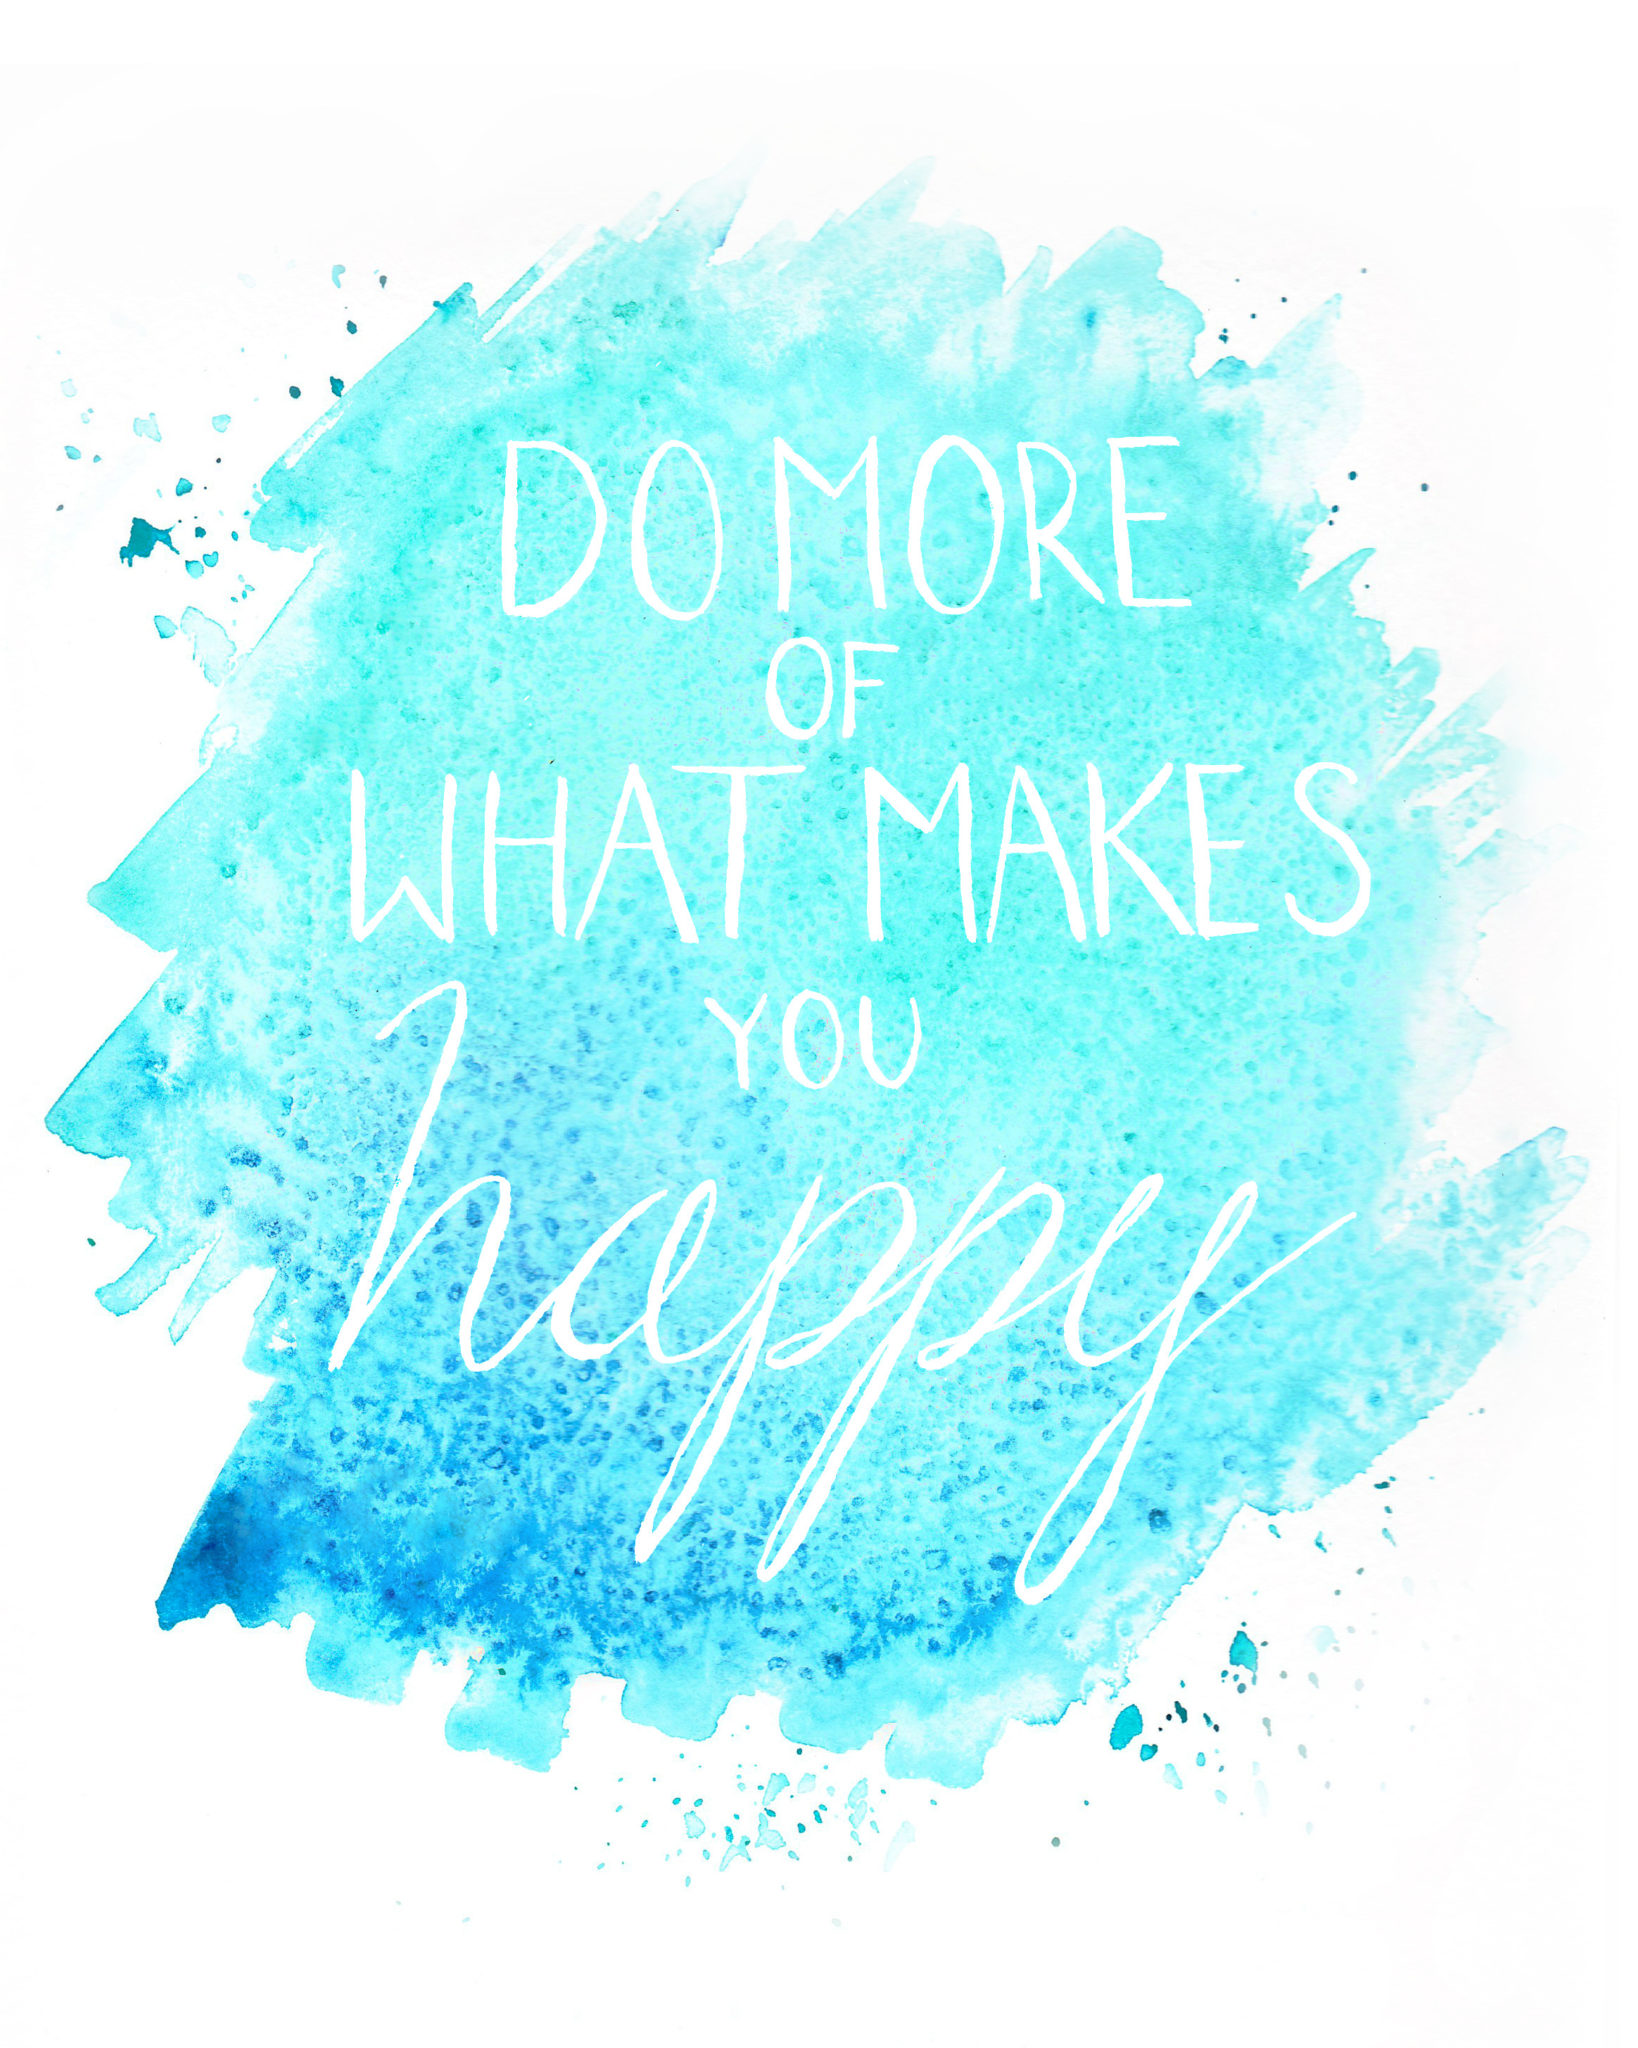 Monday Musings: New Year's Resolutions | Do More Of What Makes You Happy, watercolor by Willow Arlen, via willcookforfriends.com